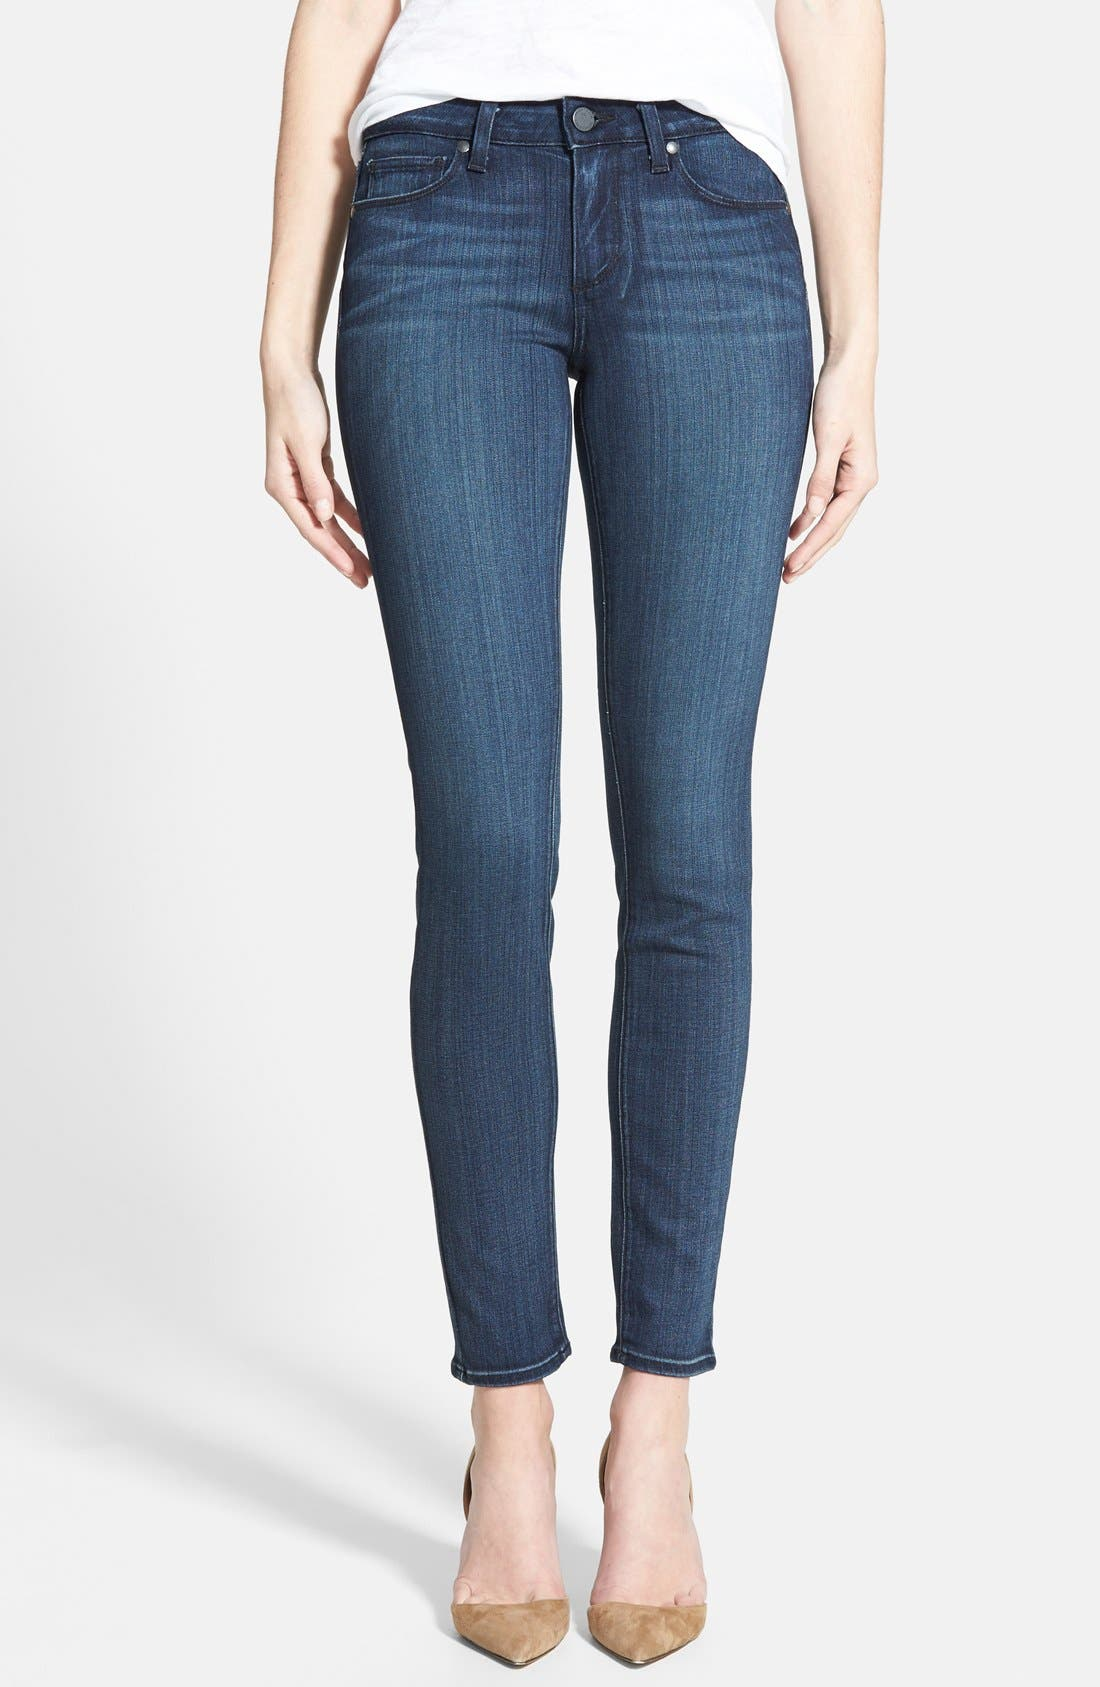 Alternate Image 1 Selected - Paige Denim 'Transcend - Verdugo' Ultra Skinny Jeans (Valor)